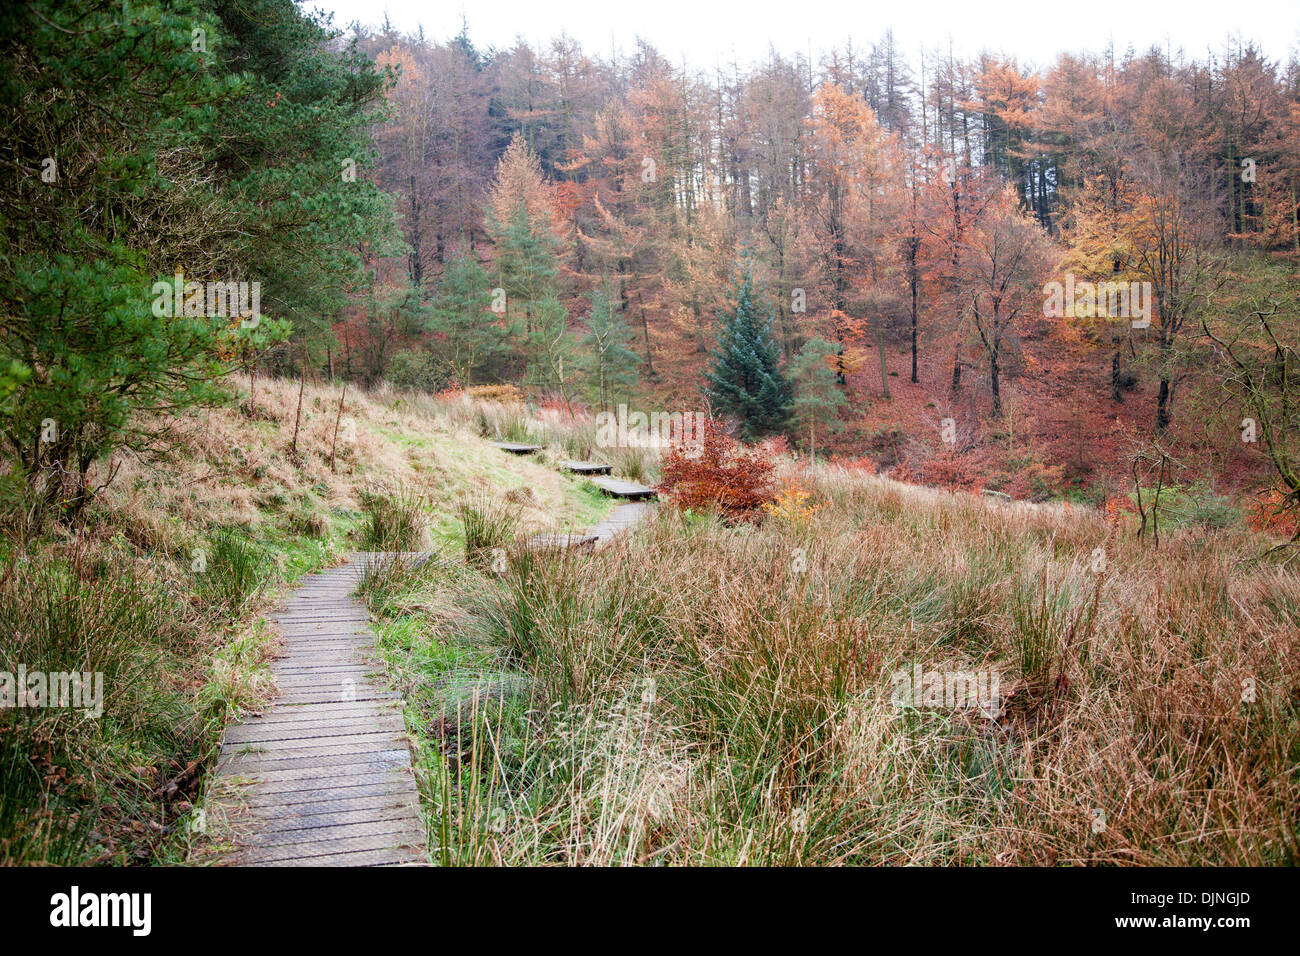 A wooden boardwalk covering a footpath, autumnal trees, brown leaves, conifers, near Bollin Brook Macclesfield Forest Cheshire - Stock Image